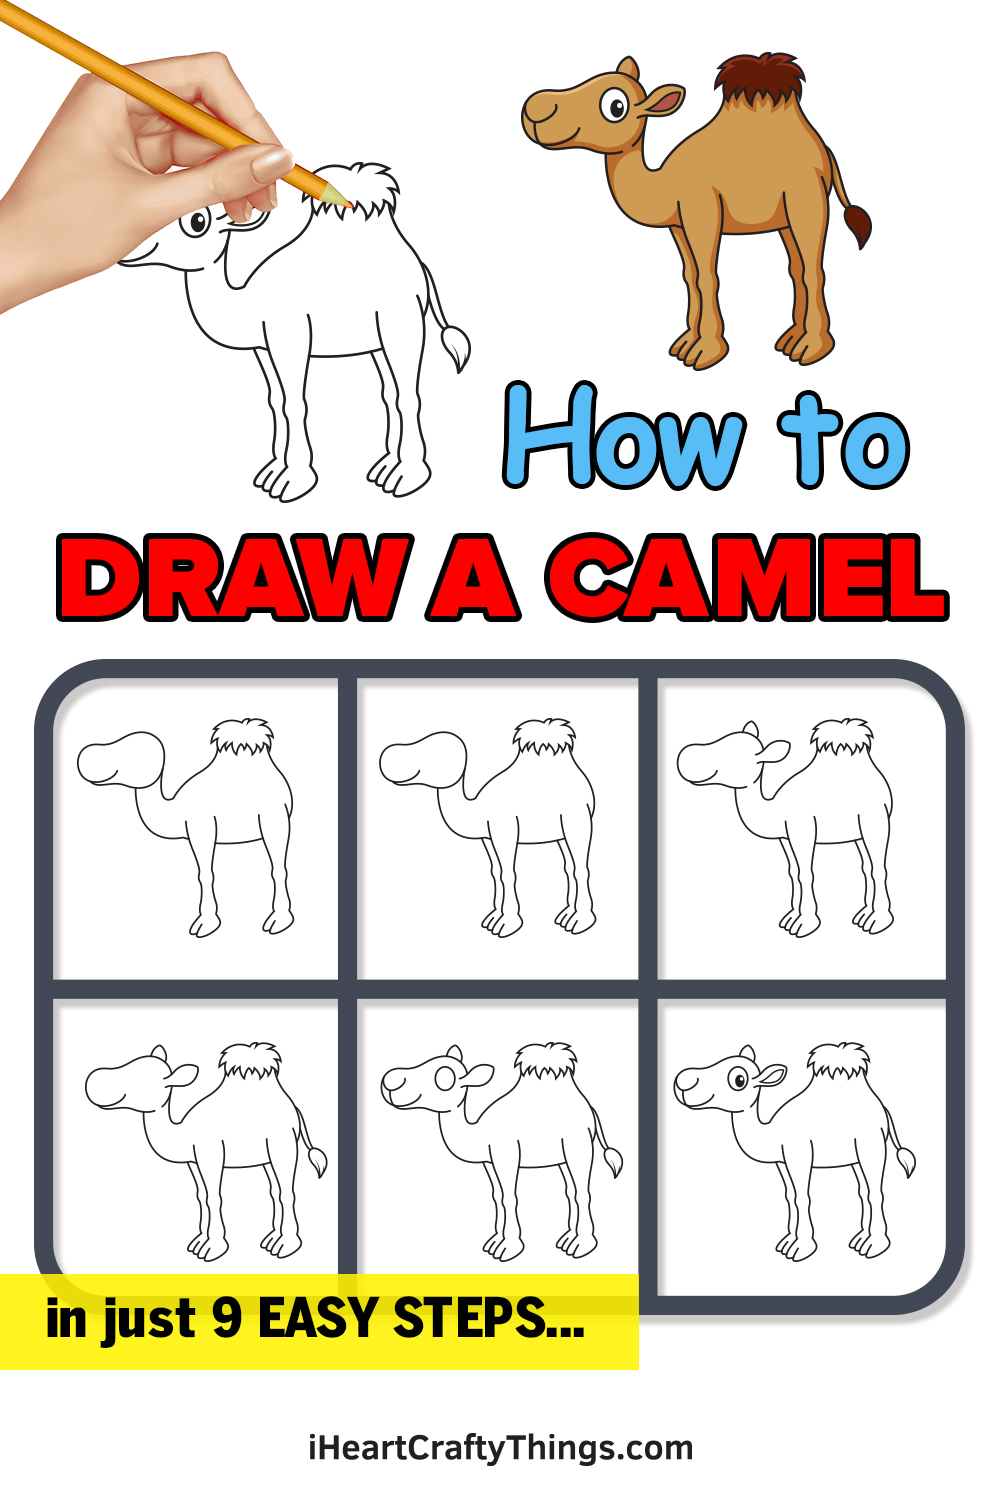 how to draw a camel in 9 easy steps